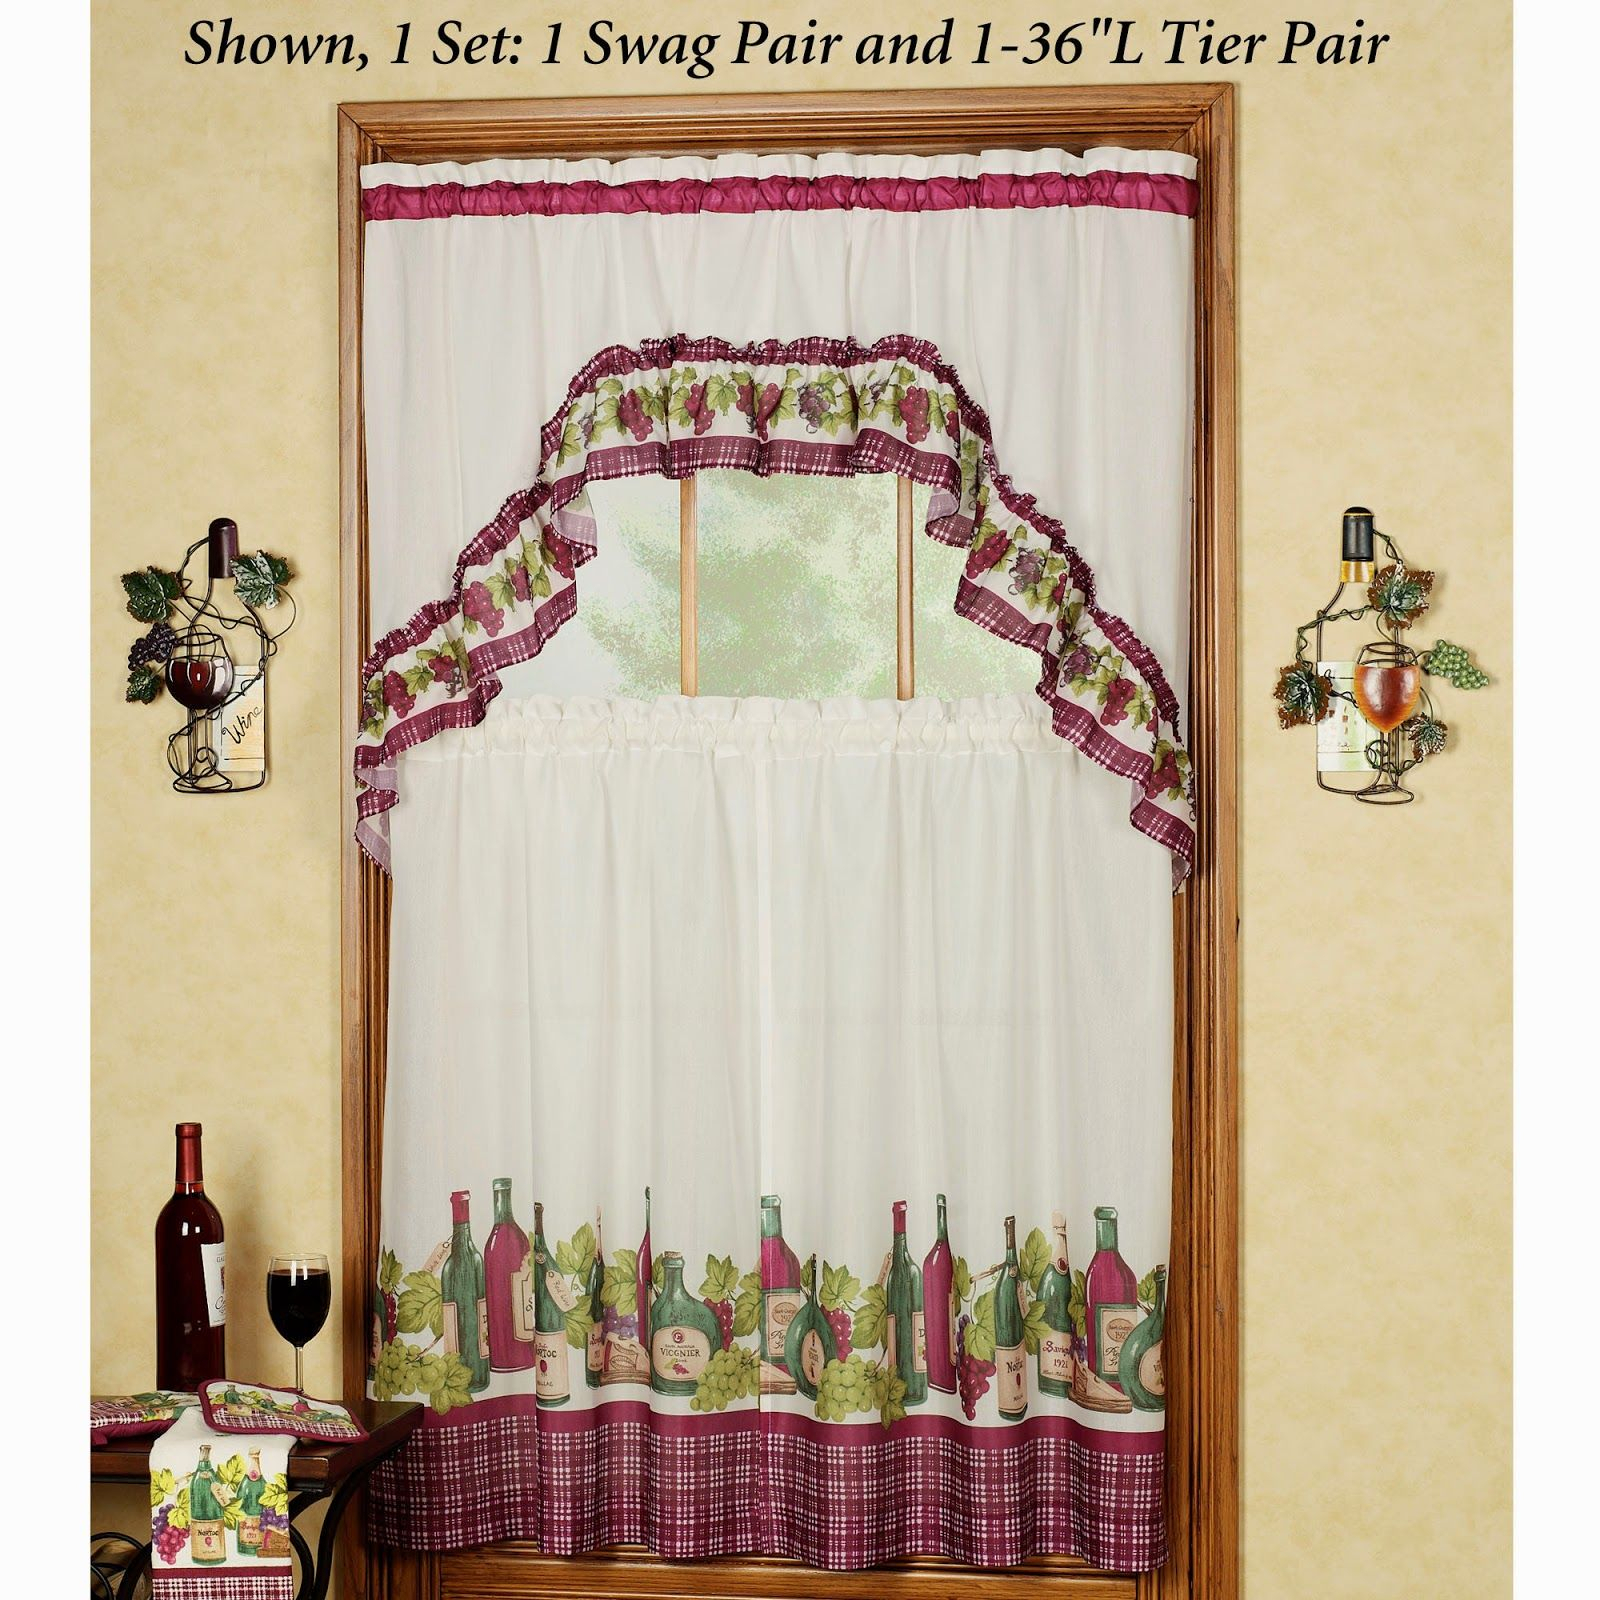 Kitchen Curtains Green Gingham. Kitchen Curtains Grapes And With Regard To Scroll Leaf 3 Piece Curtain Tier And Valance Sets (Gallery 12 of 20)